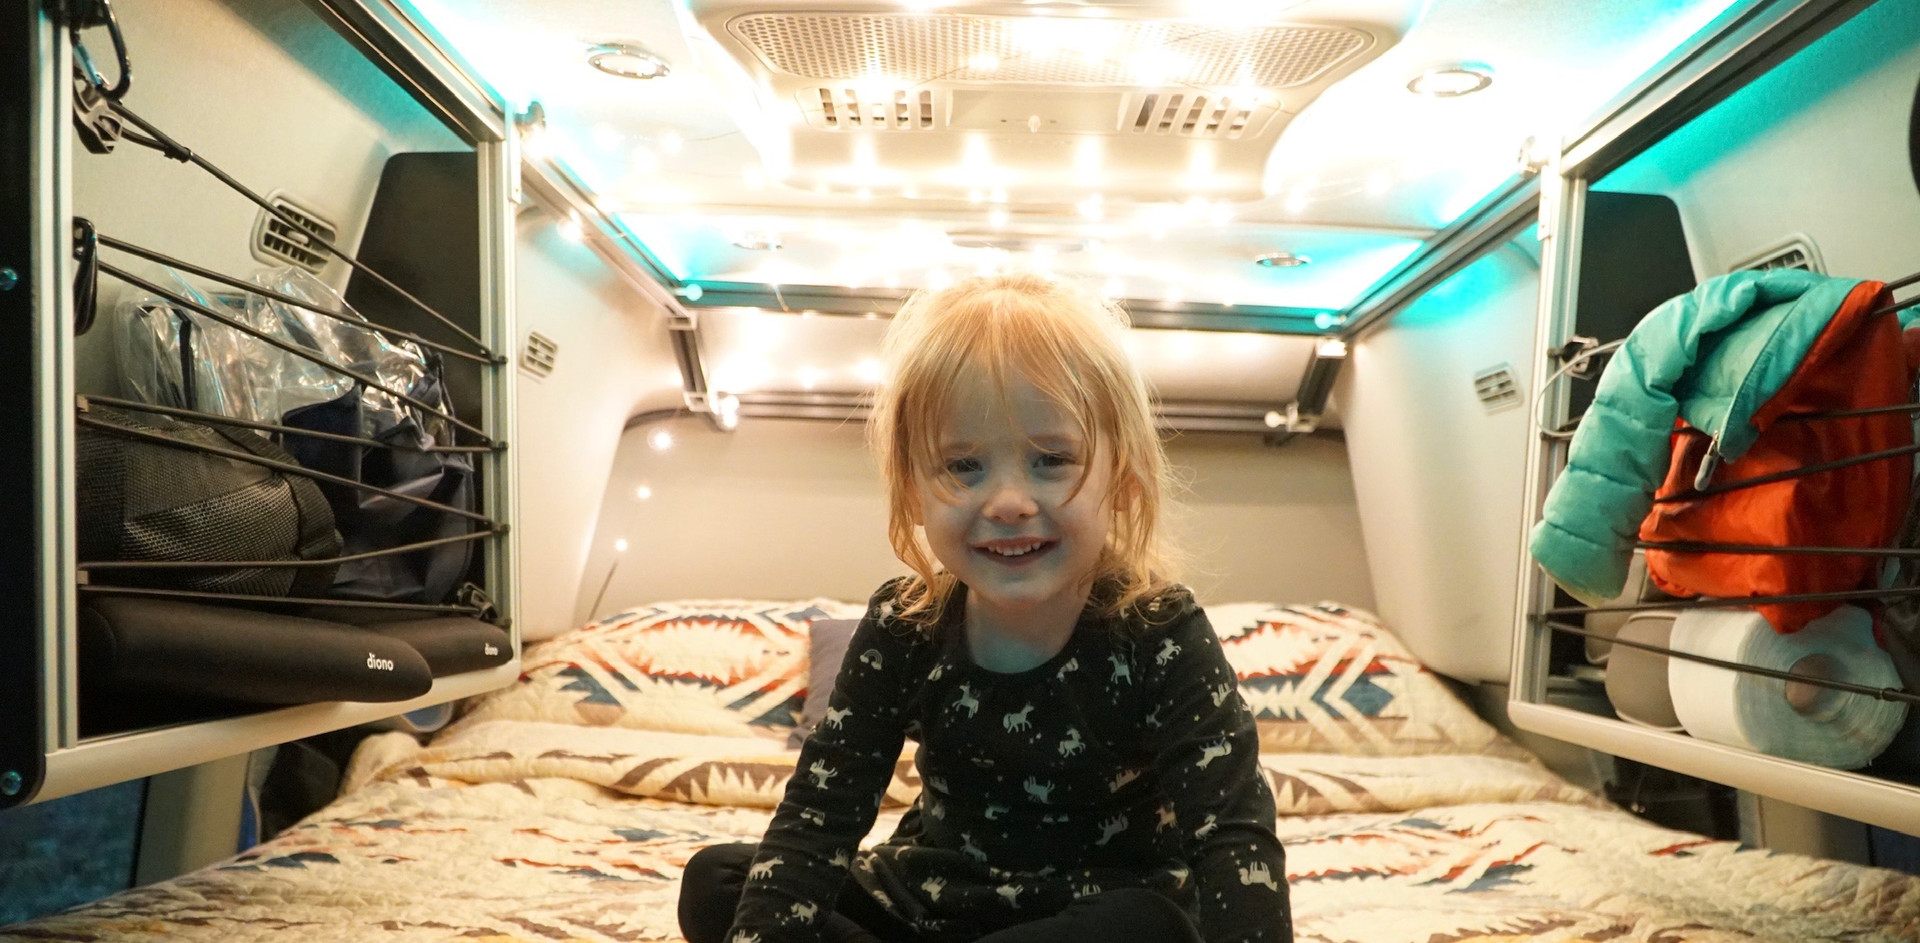 Campout in the van!